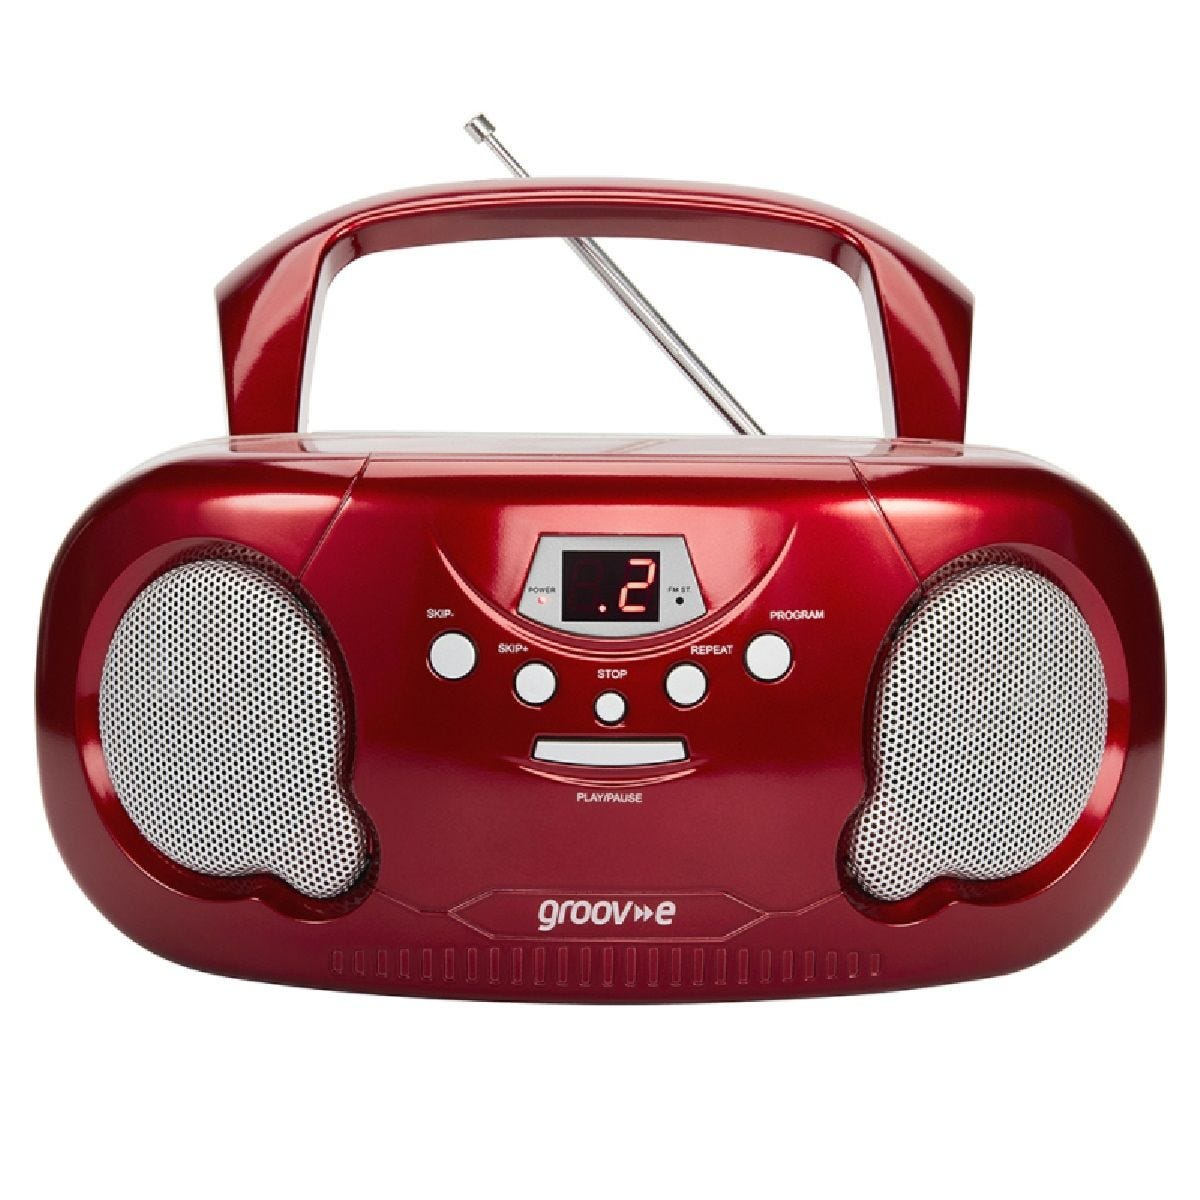 Groov-e Original Boombox Portable CD Player with Radio - Red